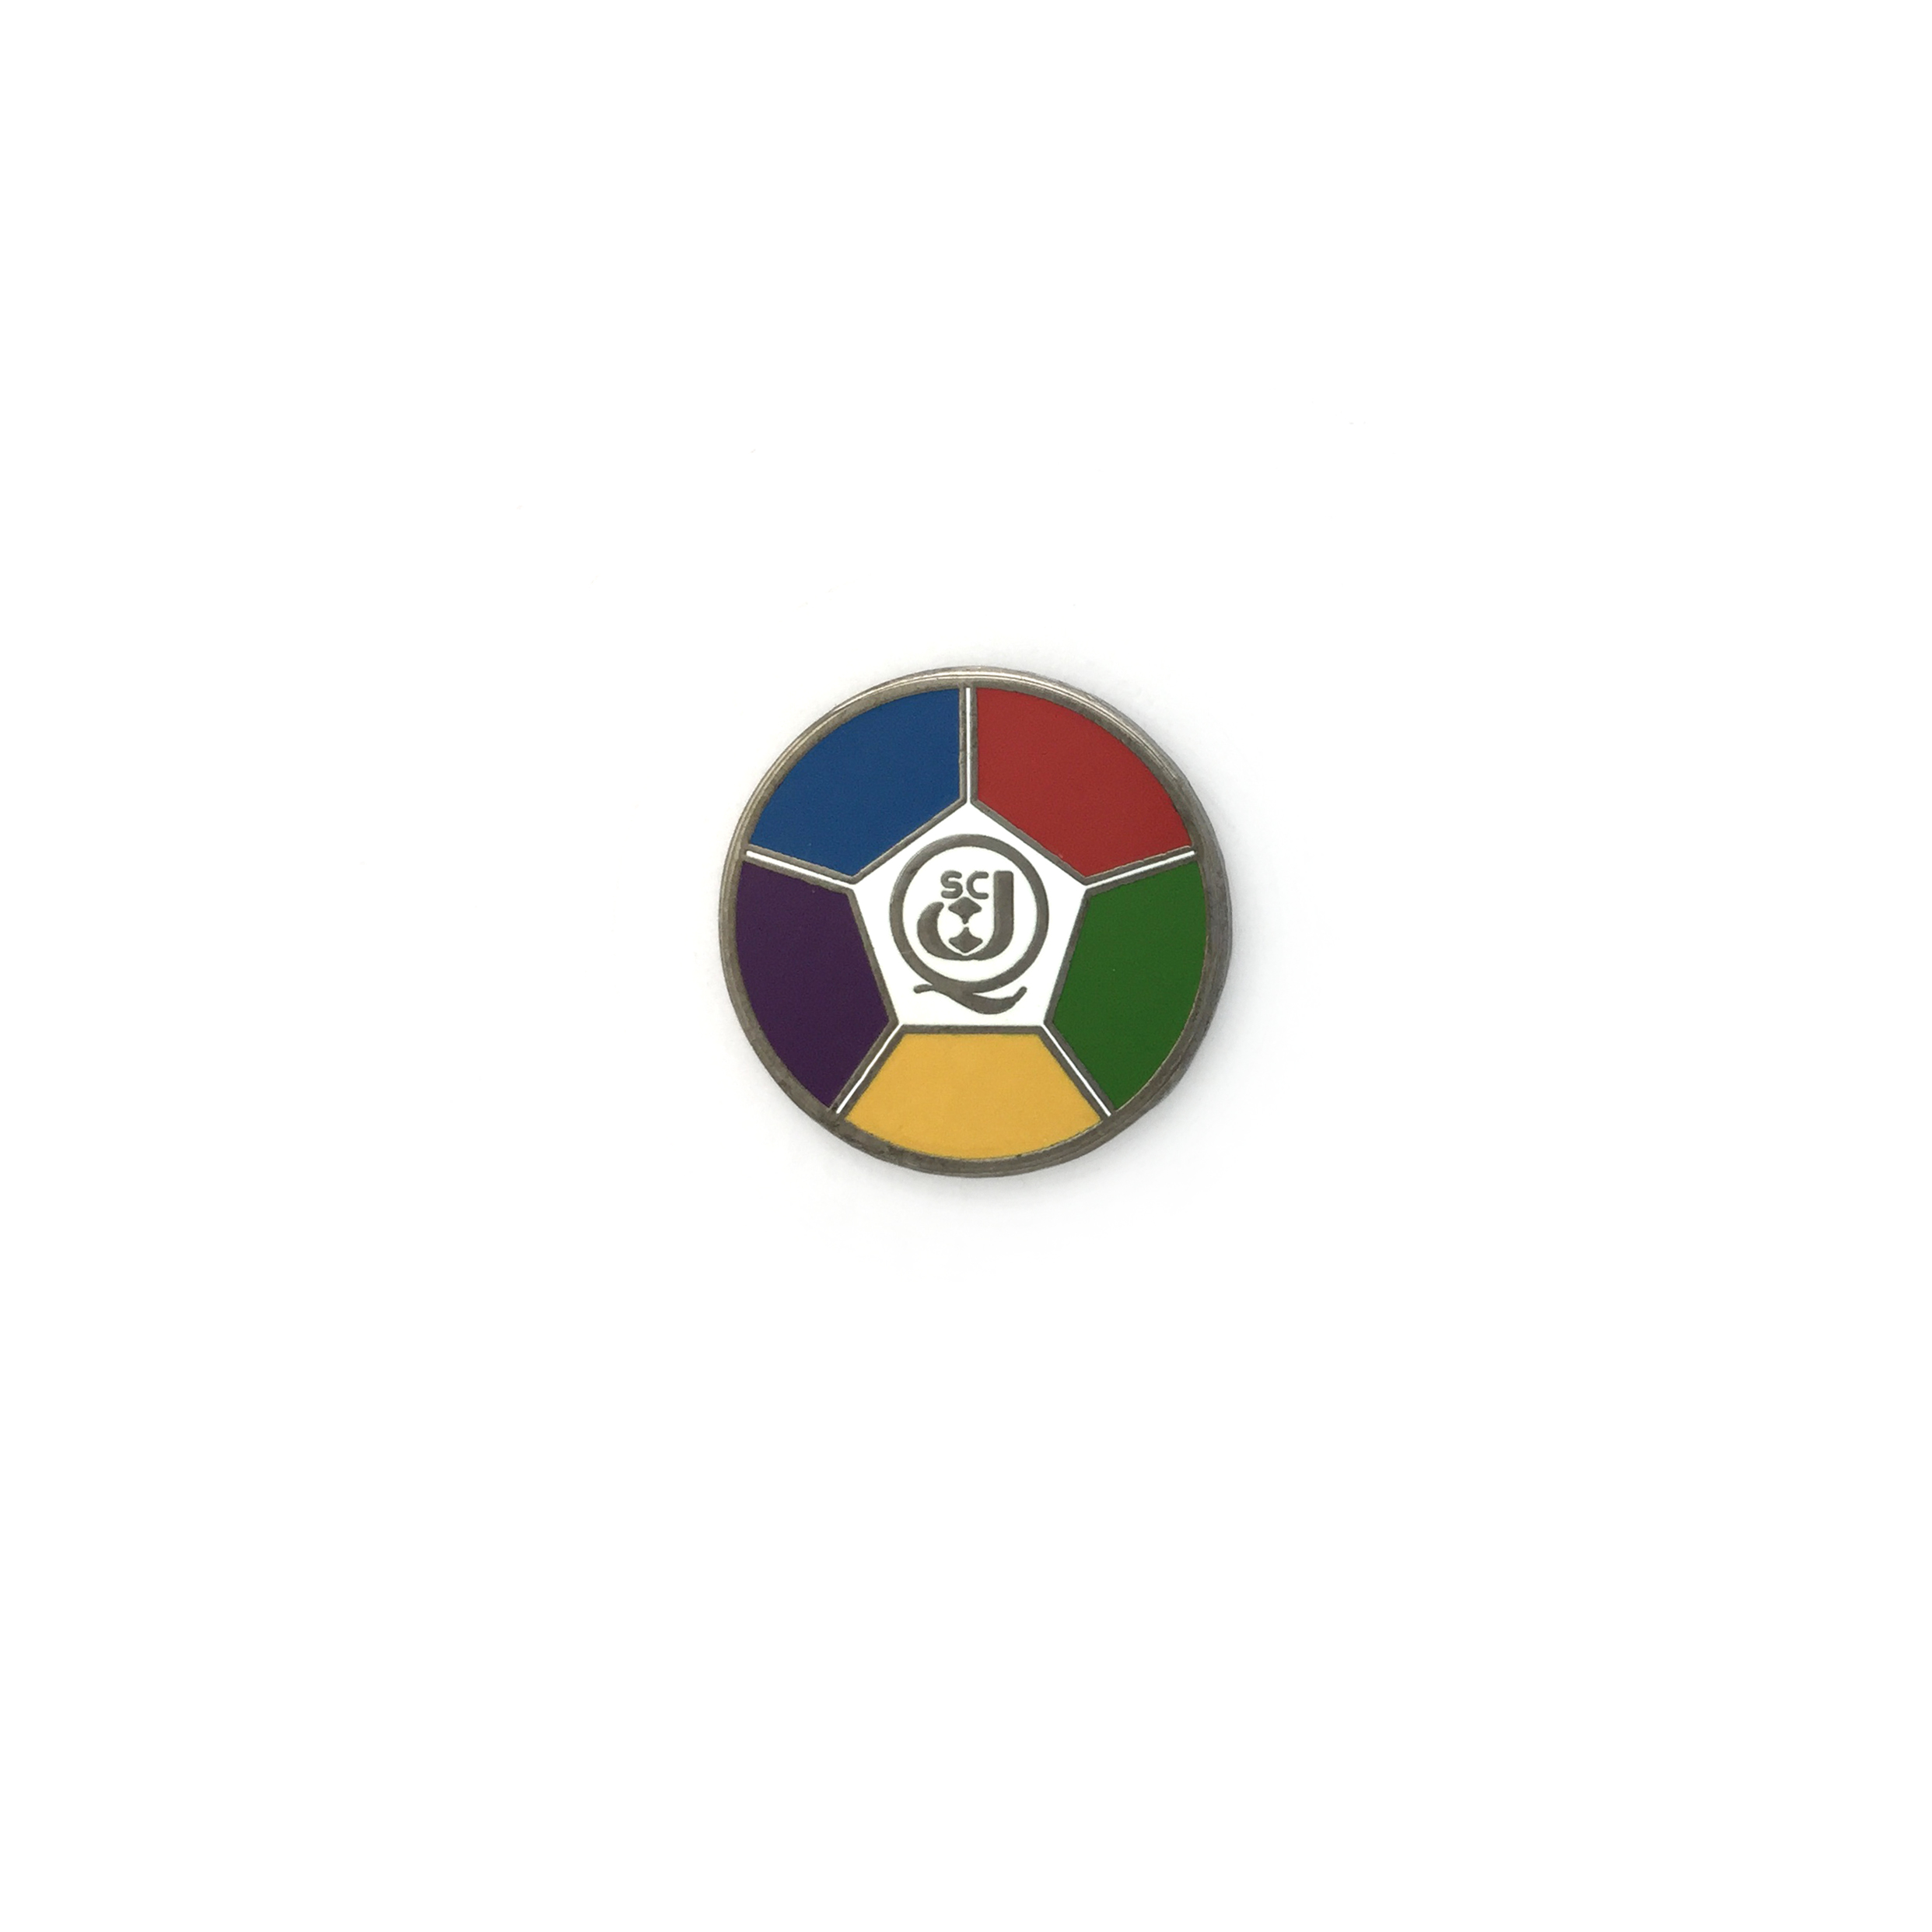 Get Lapel Pins-Hard Enamel-SC Johnson.jpg